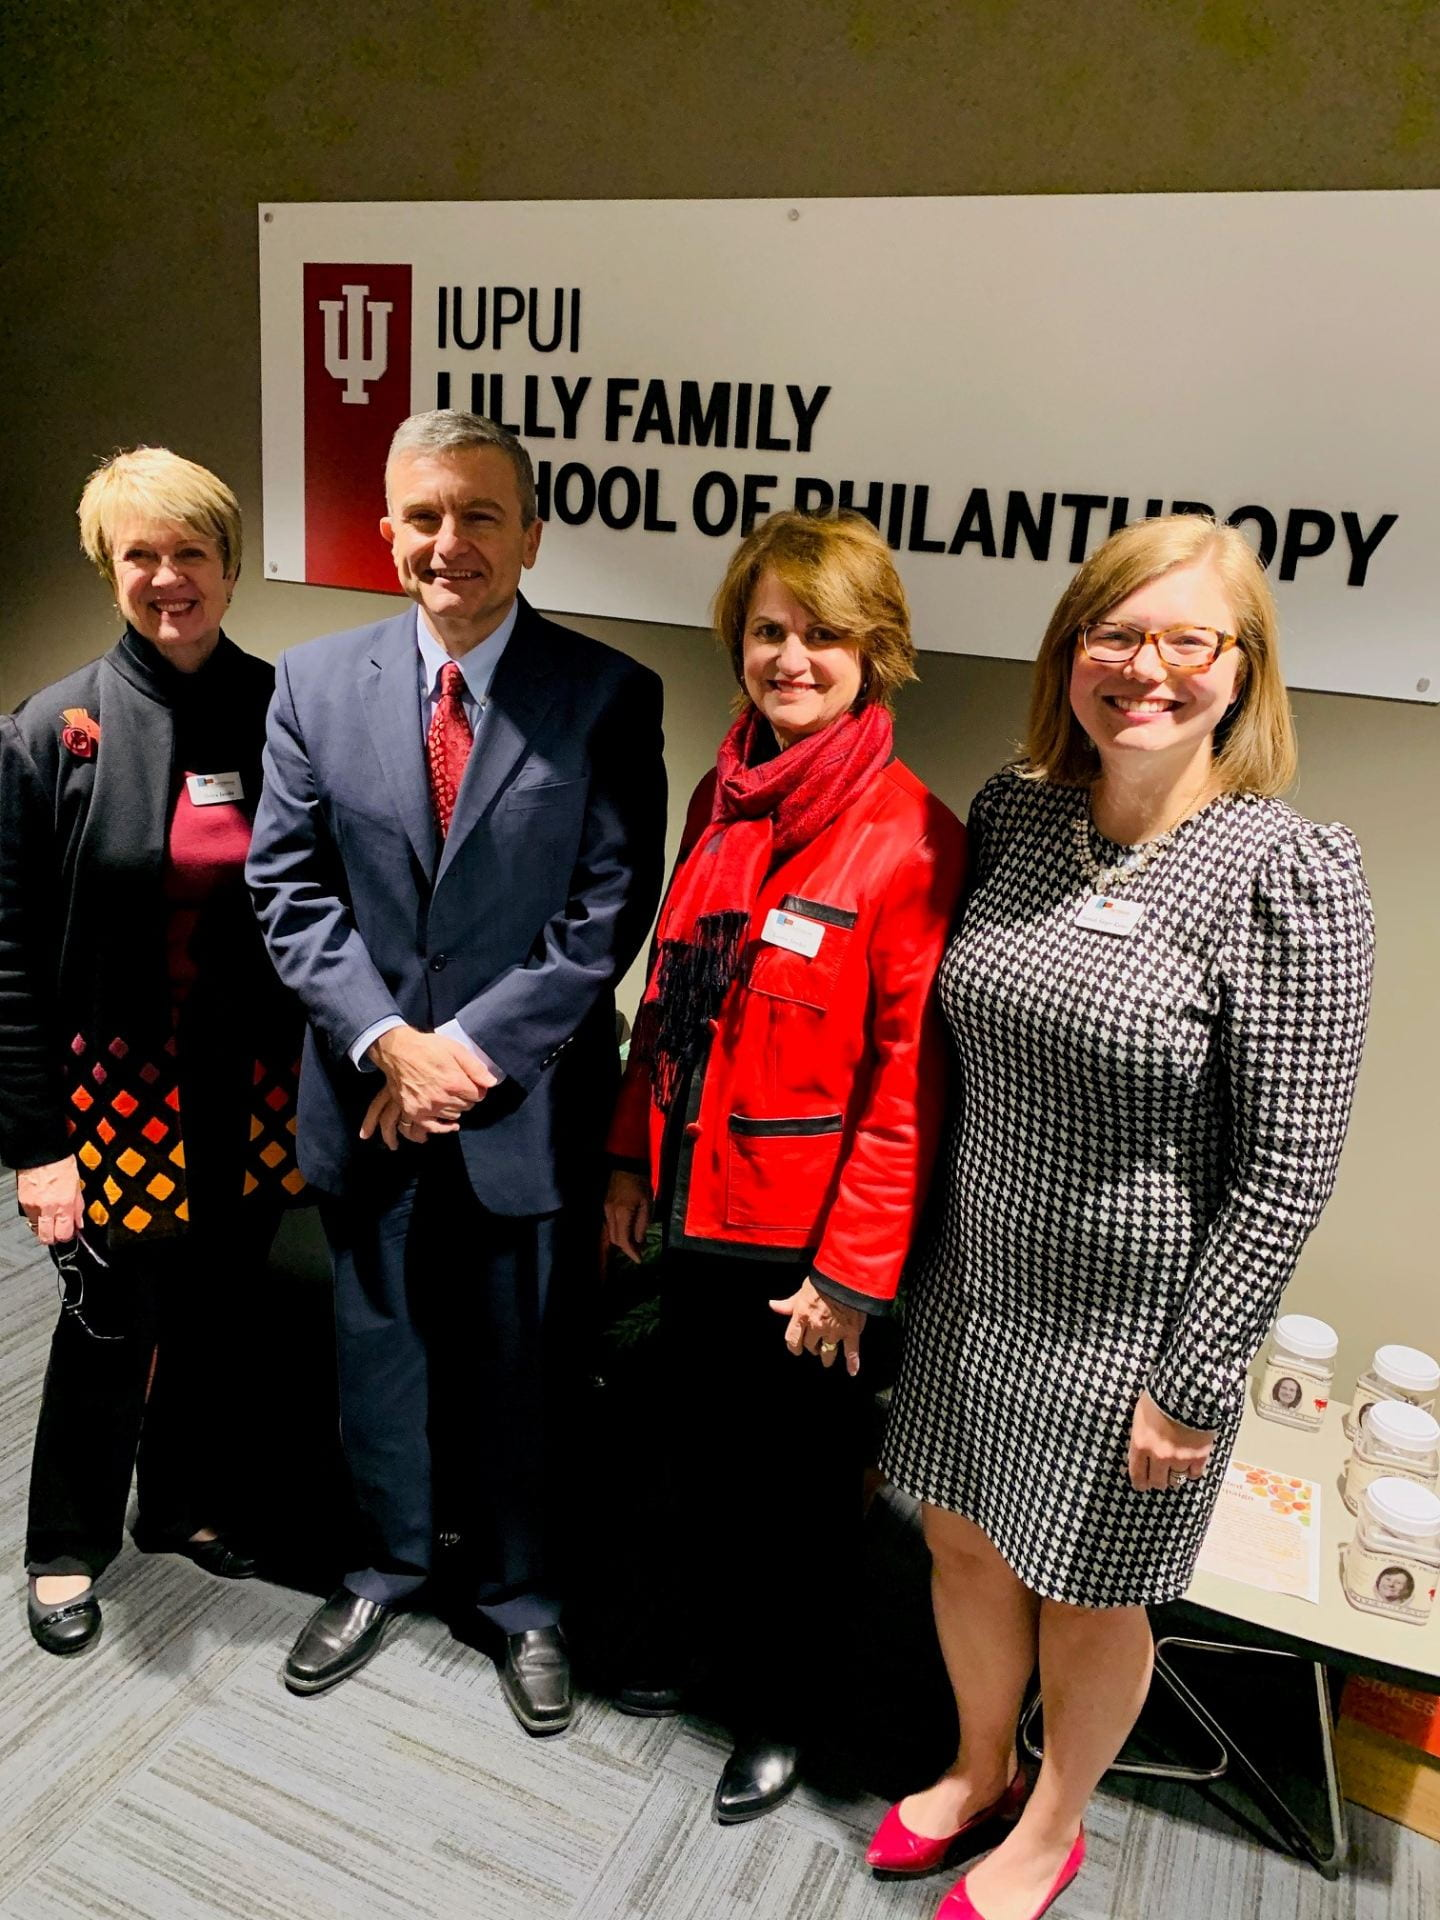 Debra Jacobs, Amir Pasic, Laury Stryker, and Hannah Saeger Karnei at the Lilly Family School of Philanthropy.